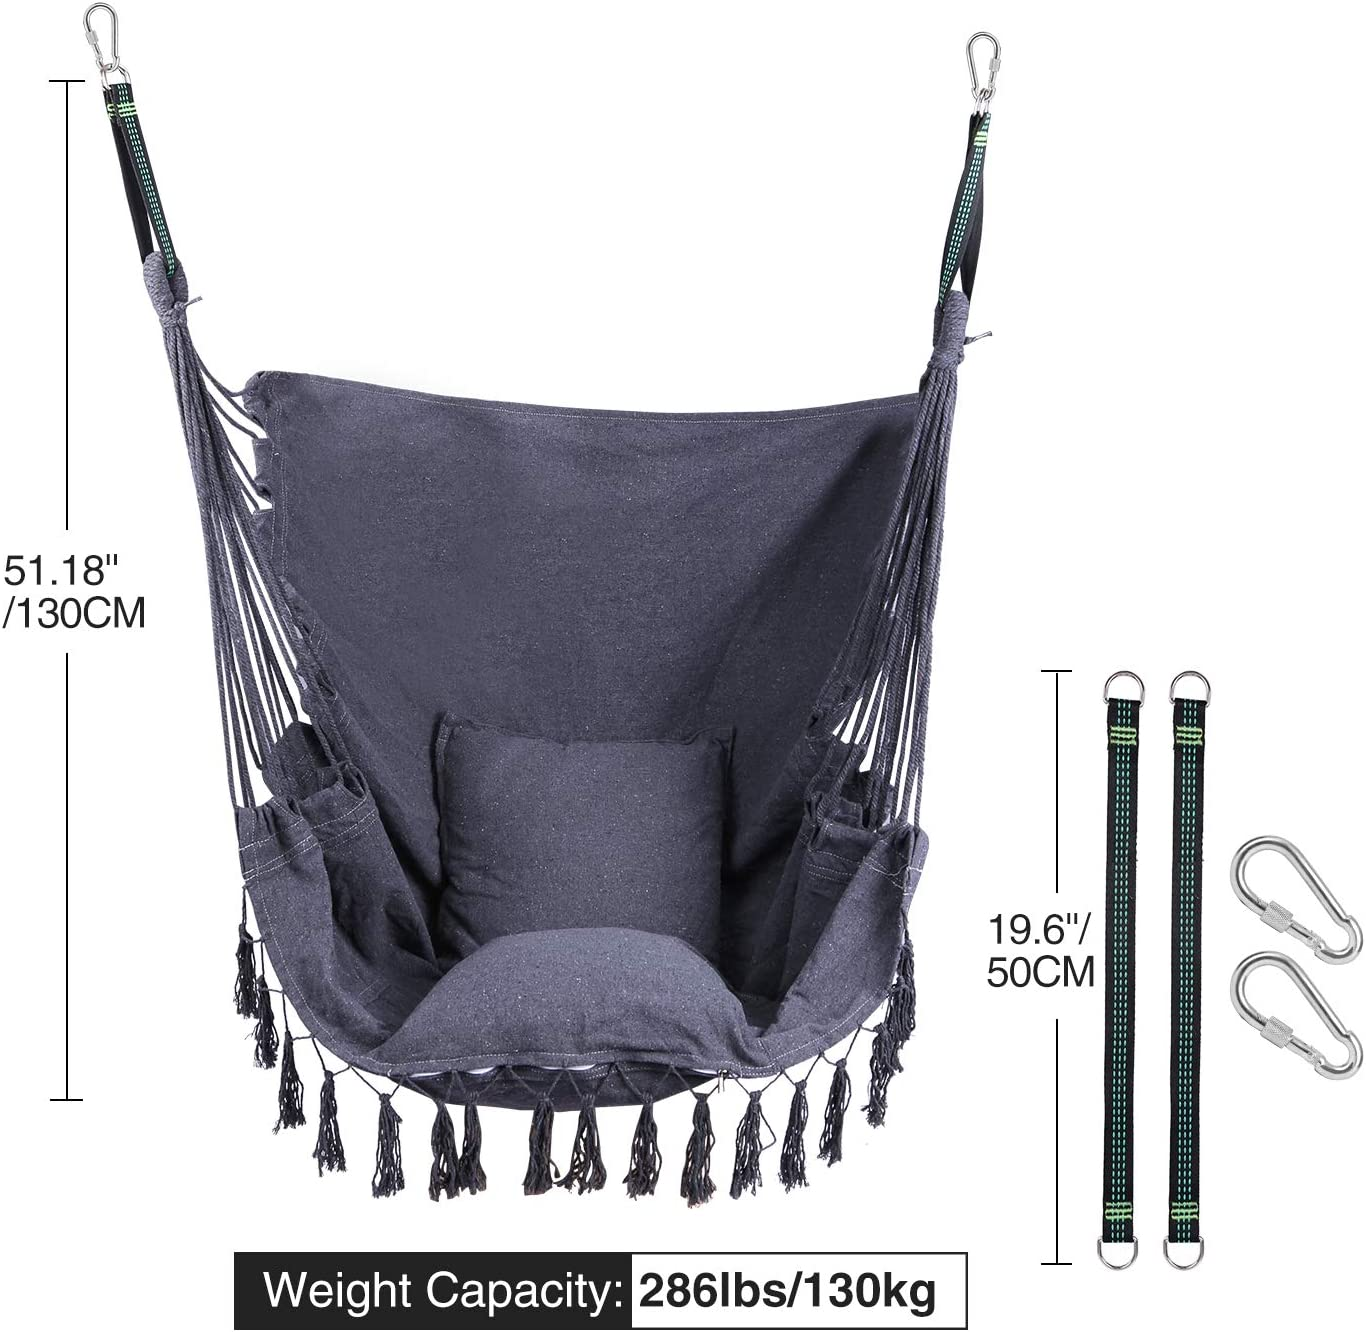 RedSwing Hanging Hammock Chair Quality Cotton Weave for Superior Comfort and Durability Max Load 330Lbs Hanging Rope Swing with 2 Cushions and Hardware Kits